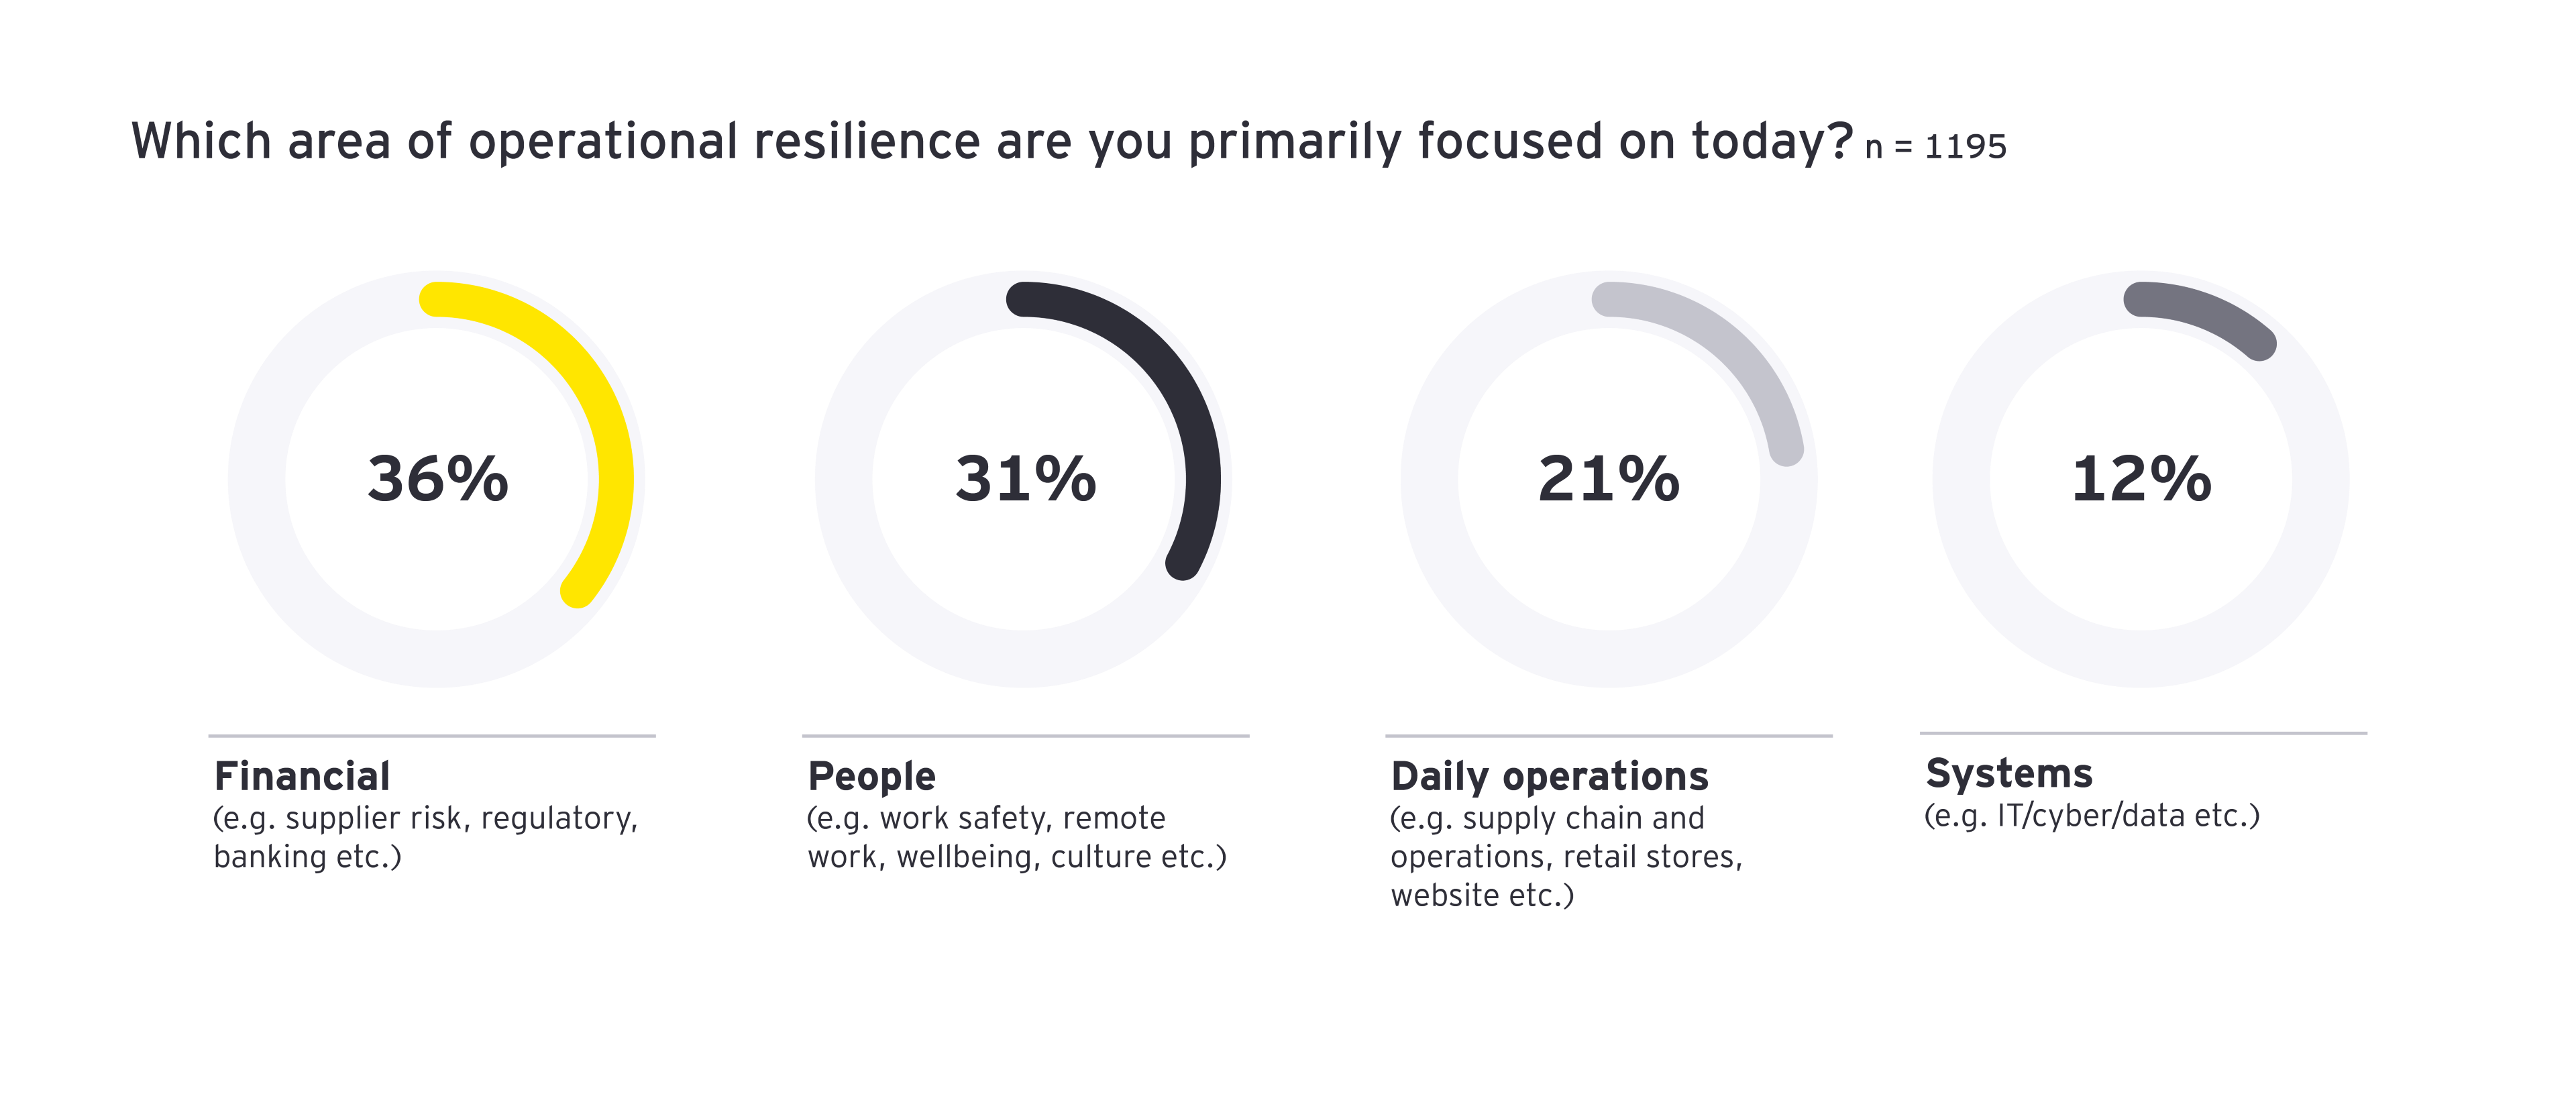 Which area of operational resilience are you primarily focused on today